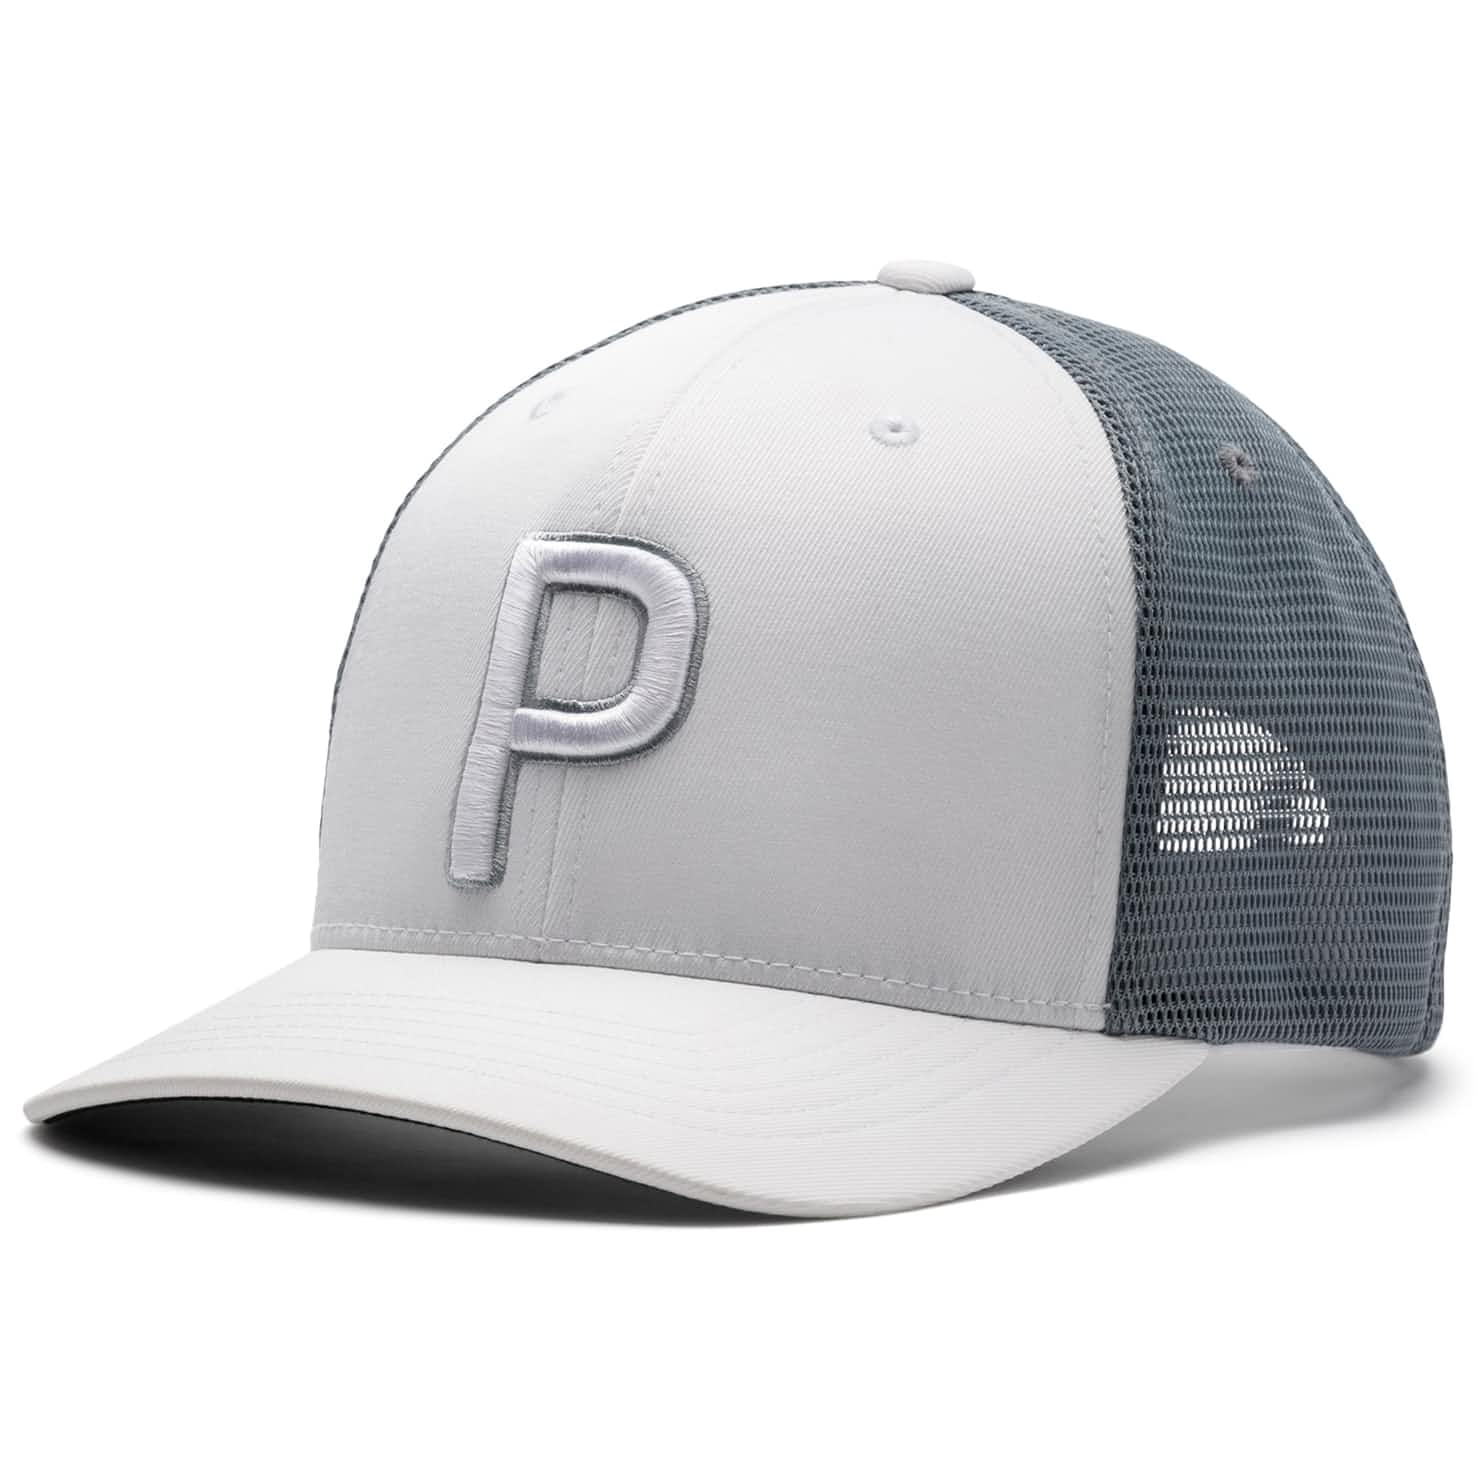 Trucker P 110 Snapback Cap Bright White - SS20